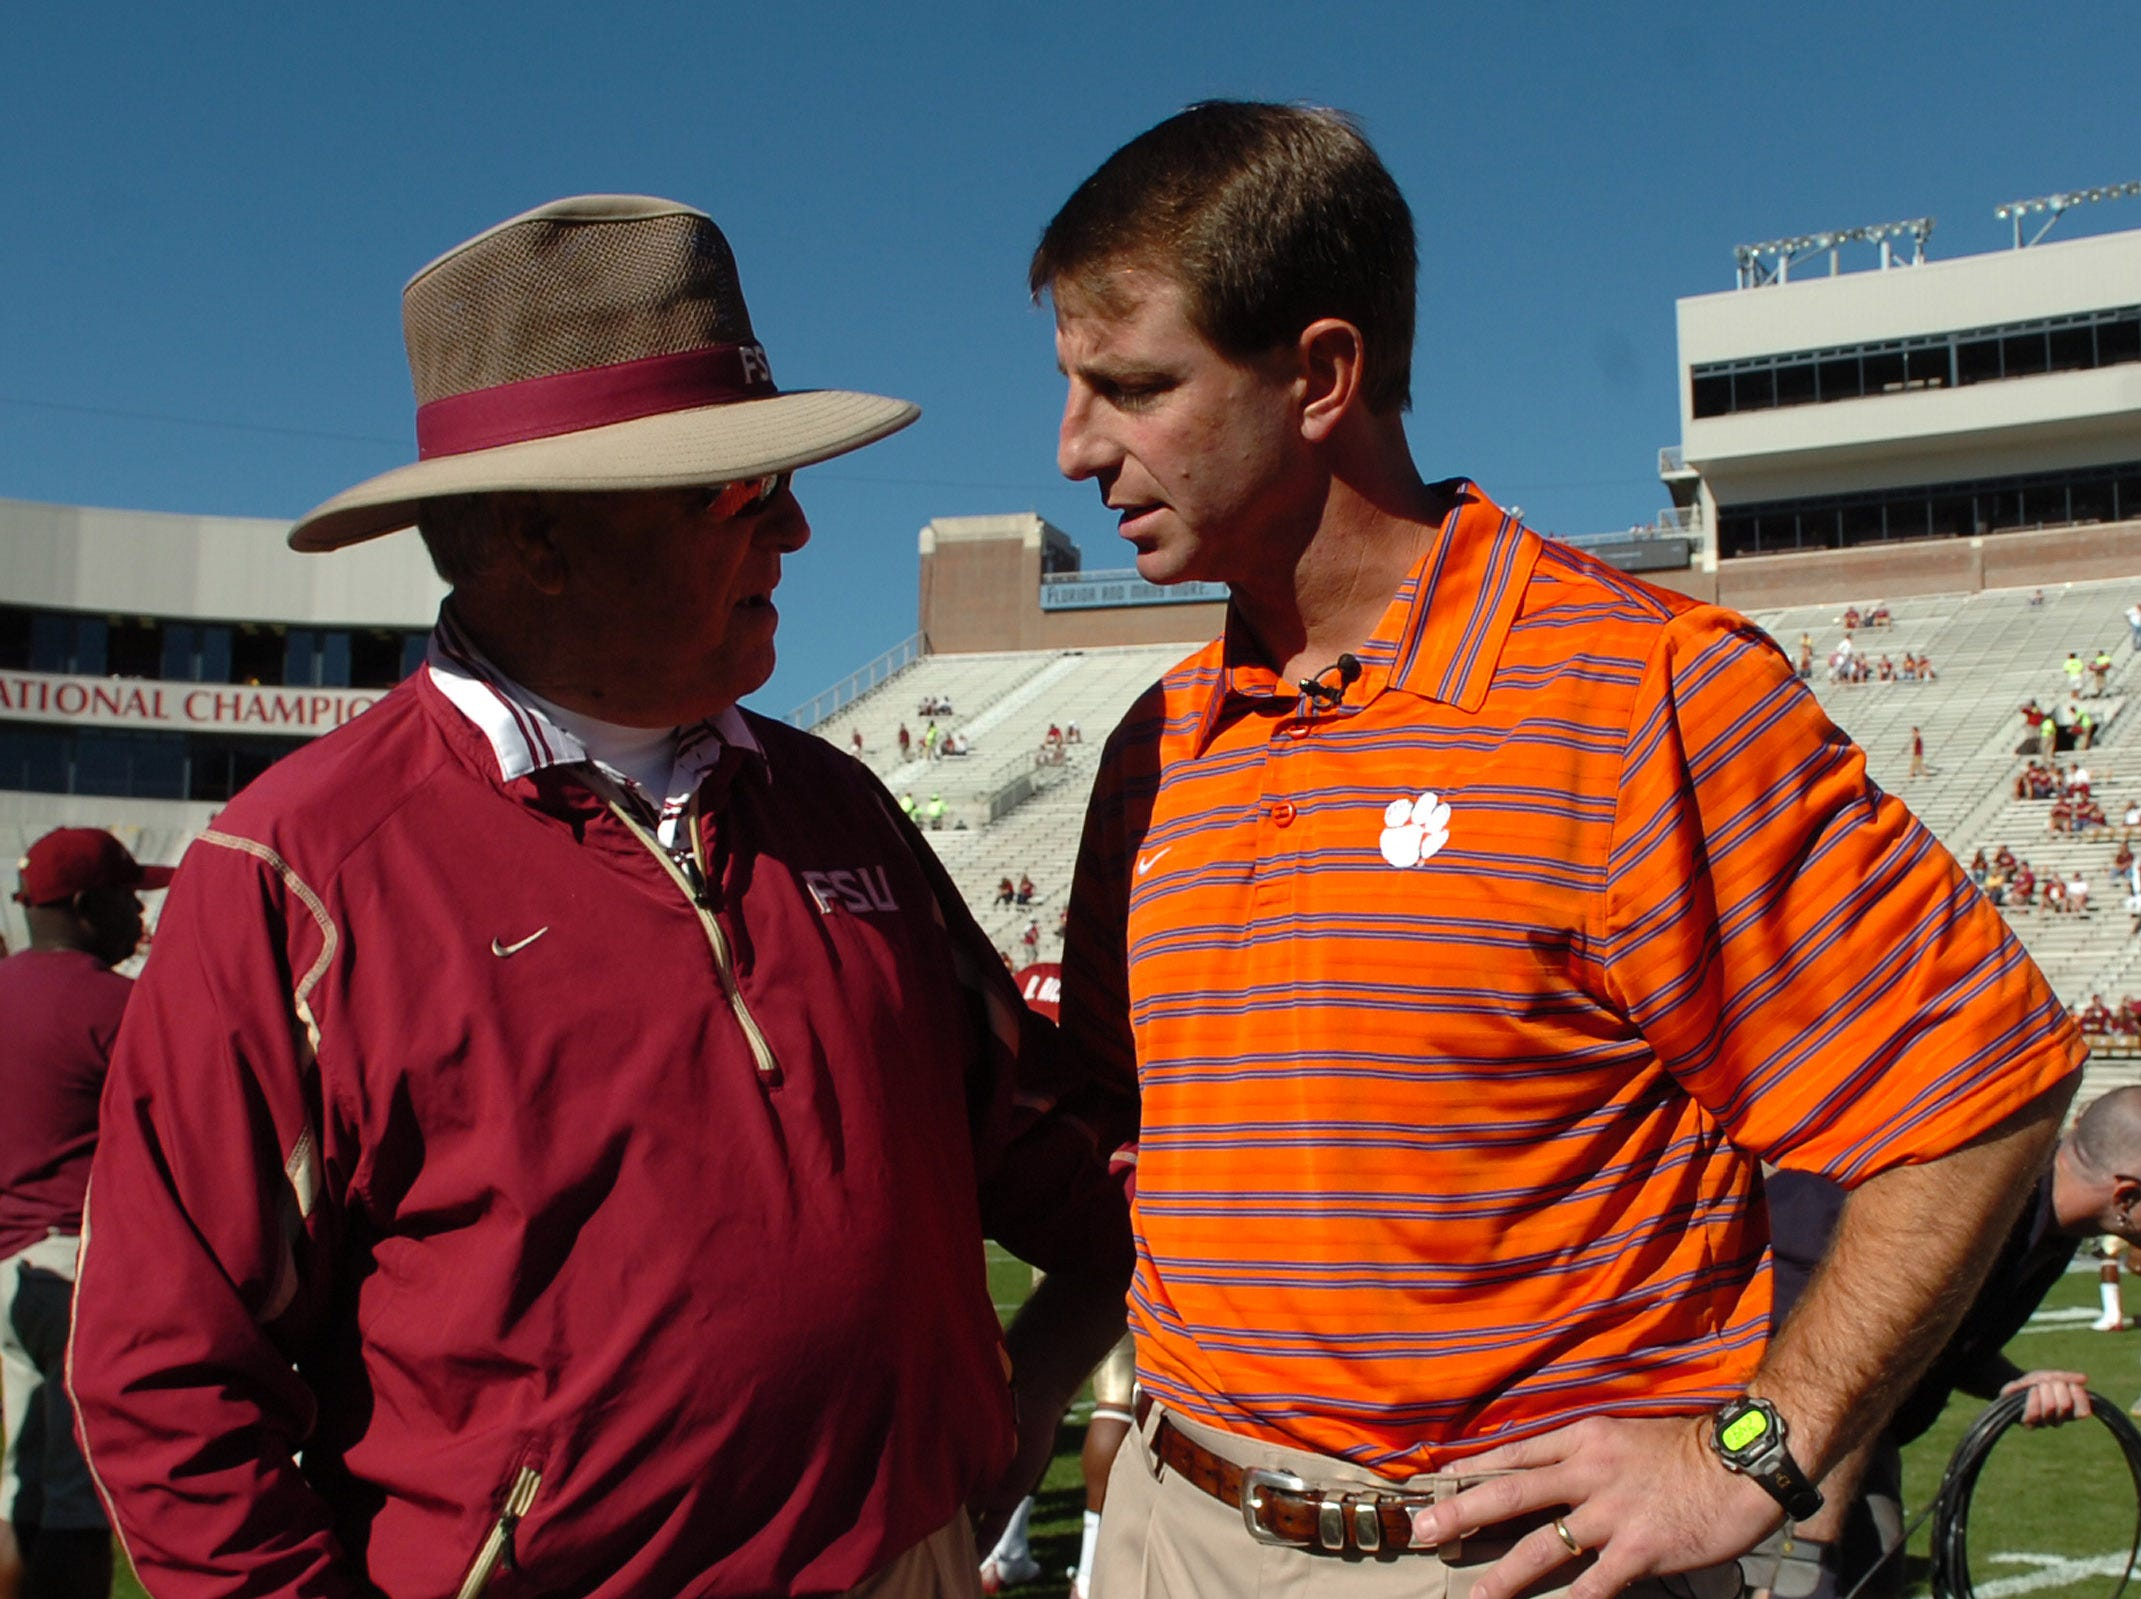 Clemson interim head coach Dabo Swinney talks with Florida State head coach Bobby Bowden before their game Saturday, Nov. 8, 2008 at FSU's Doak Campbell Stadium in Tallahassee, Fl.